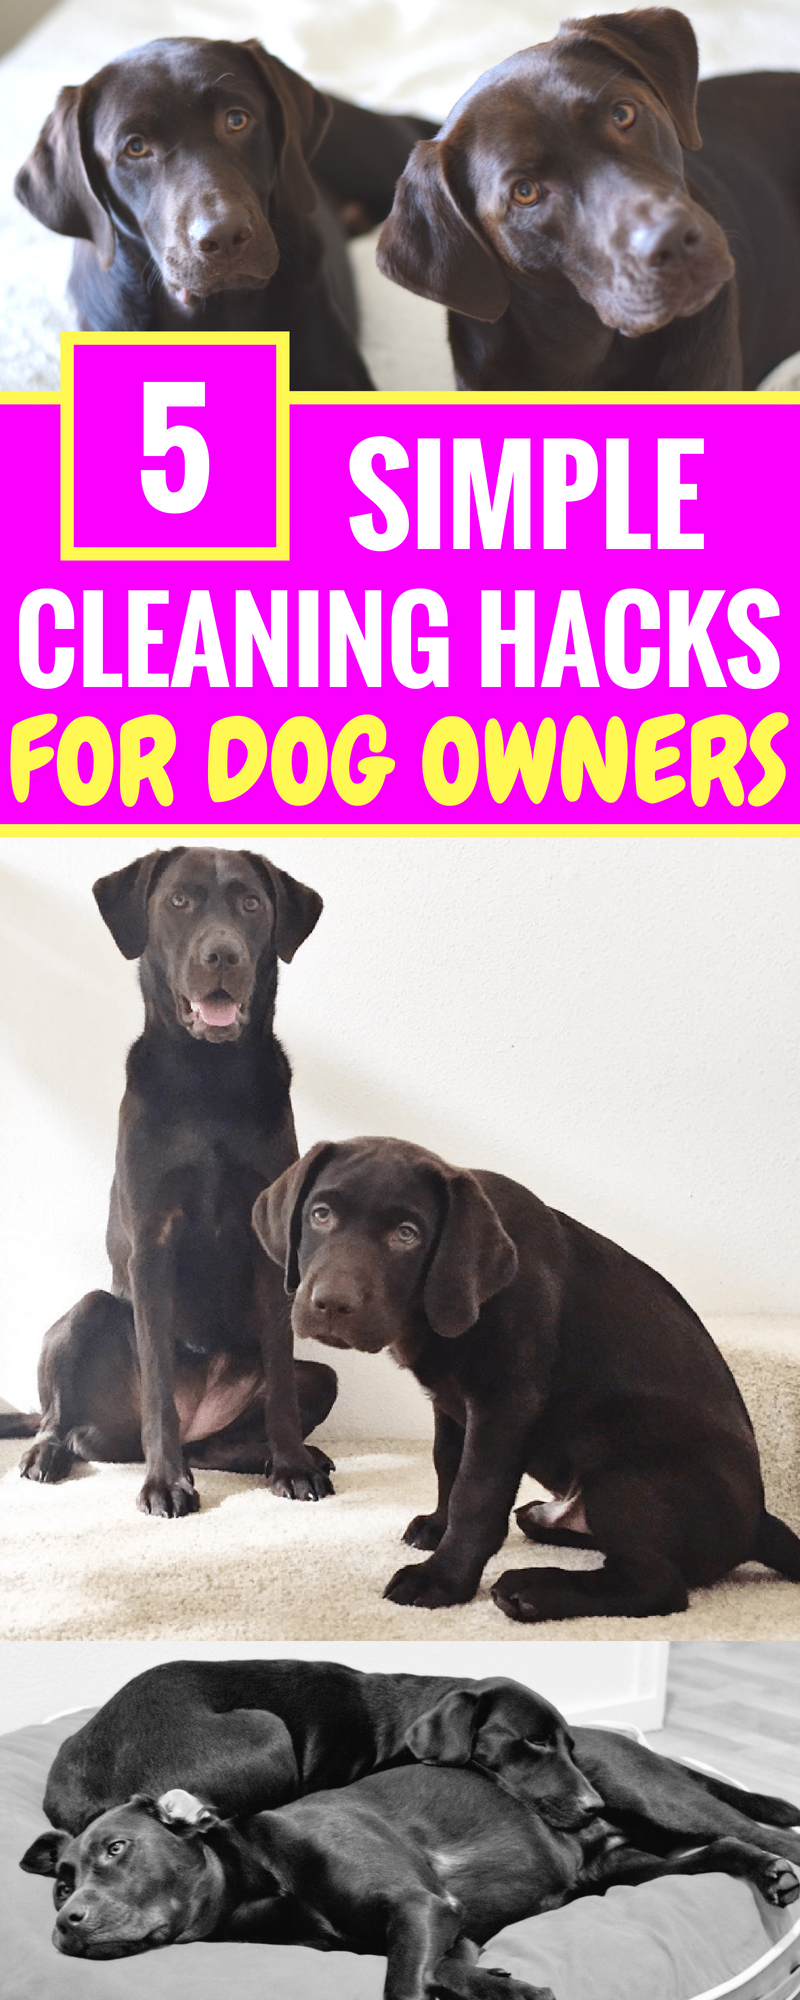 5 Simple Cleaning Hacks For Dog Owners - How I keep my house clean with two dogs - Life Hacks For Pet Owners - Cleaning Tips - Tips For Pet Owners - House Cleaning Tips - Chocolate Labradors - Communikait by Kait Hanson